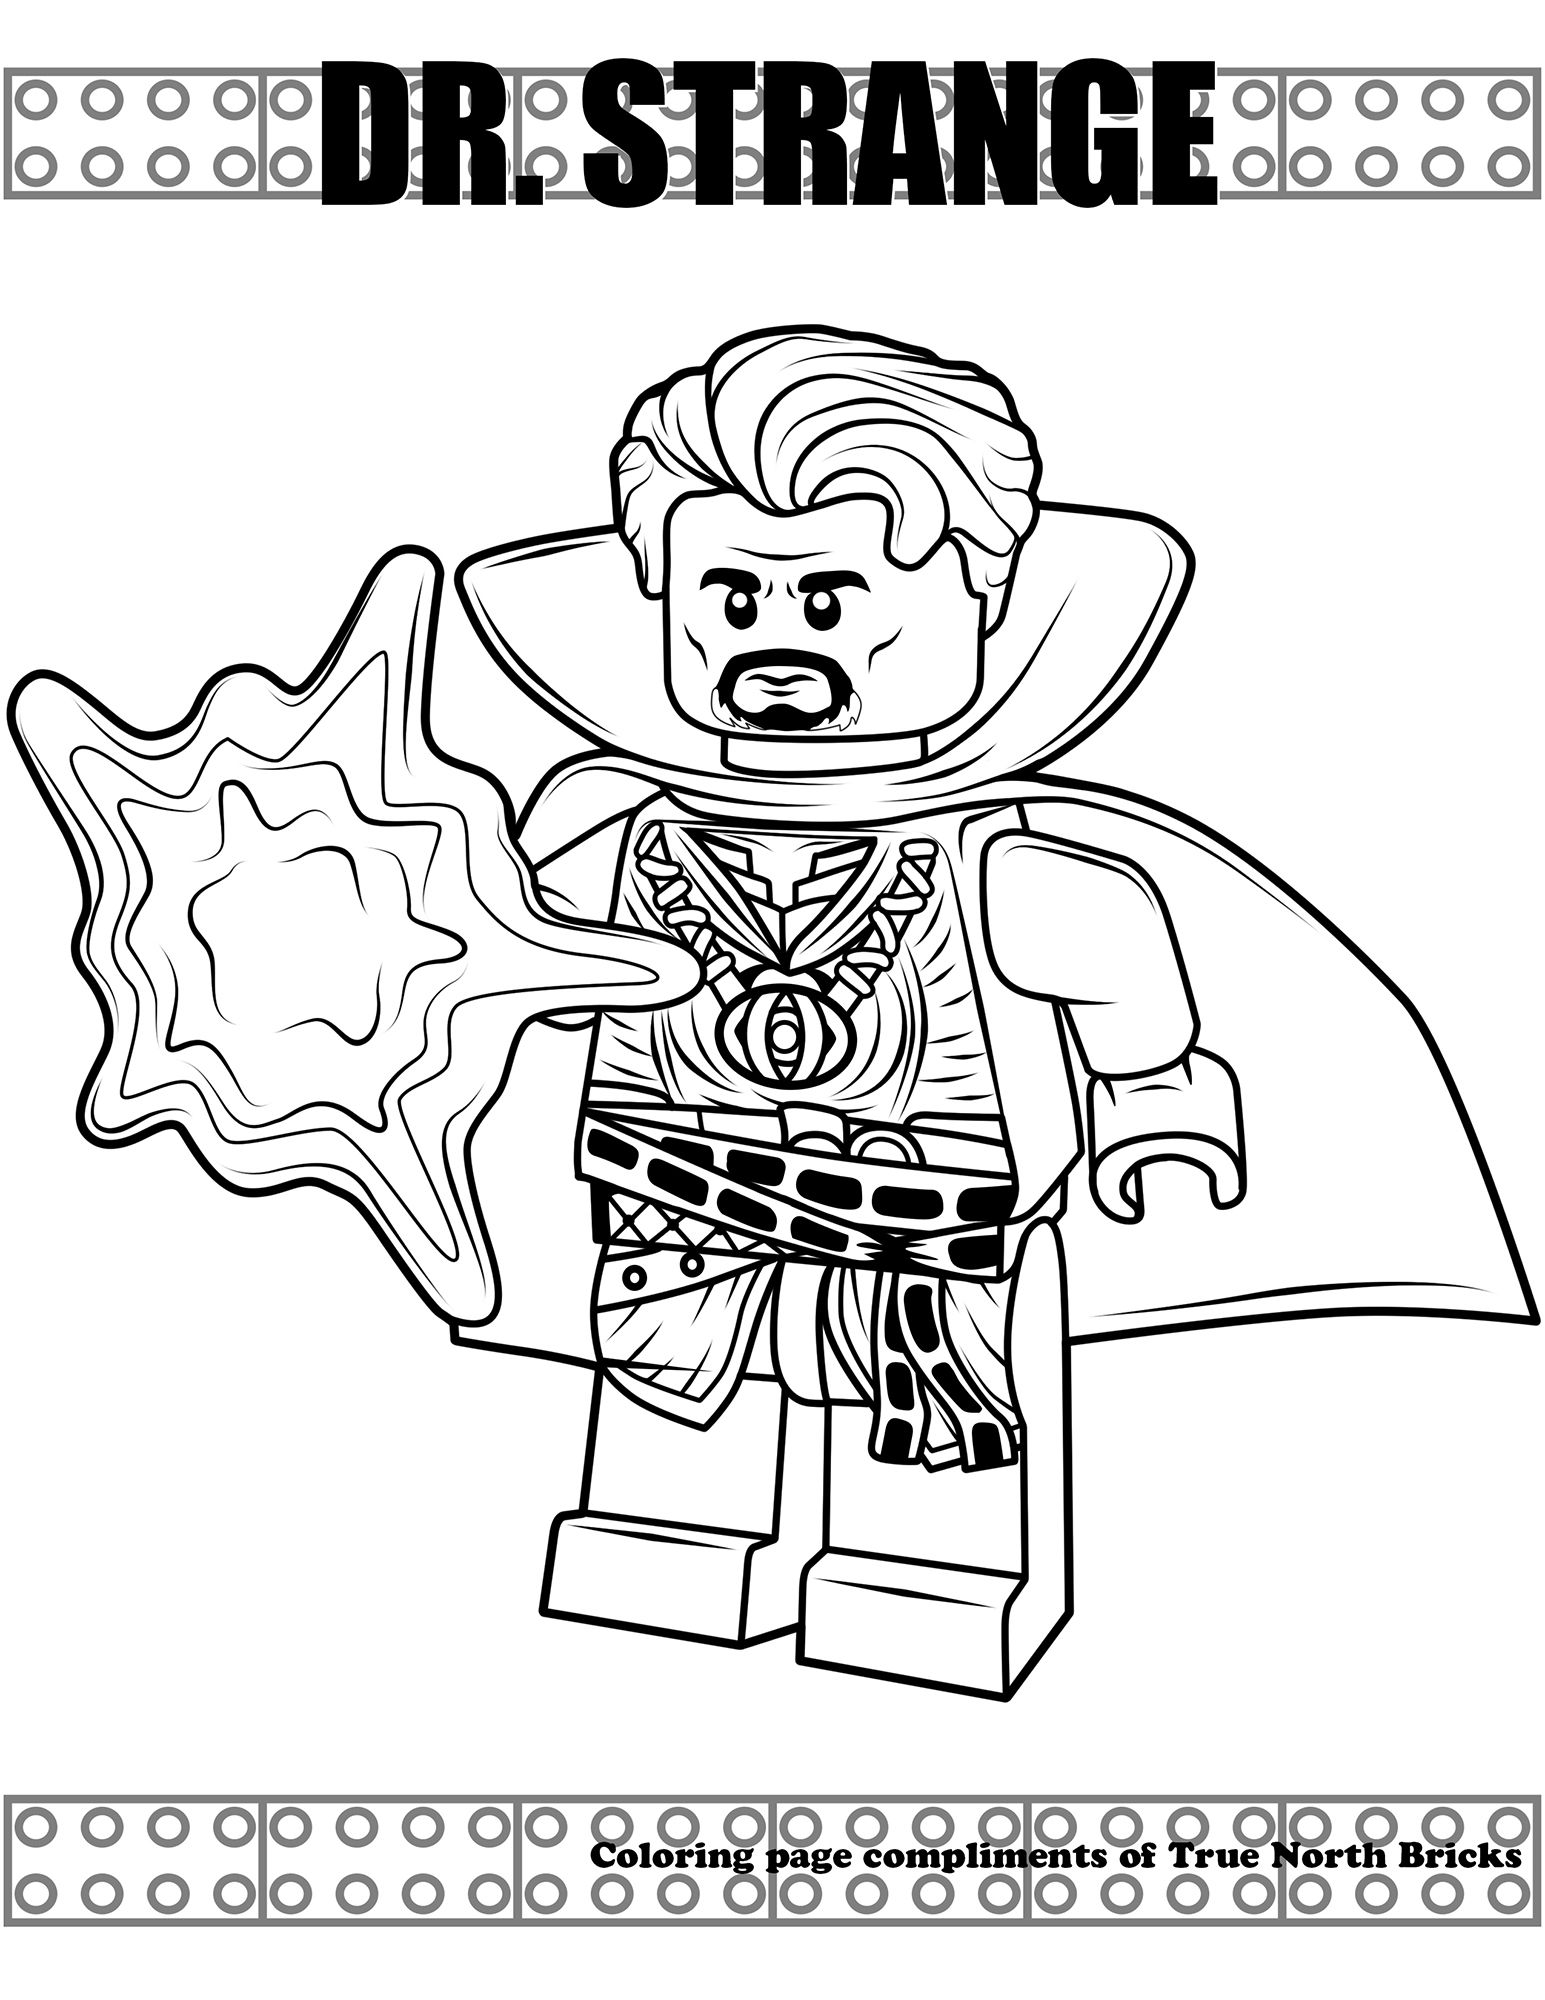 Superheroes Reviews True North Bricks Avengers Coloring Pages Avengers Coloring Lego Coloring Pages